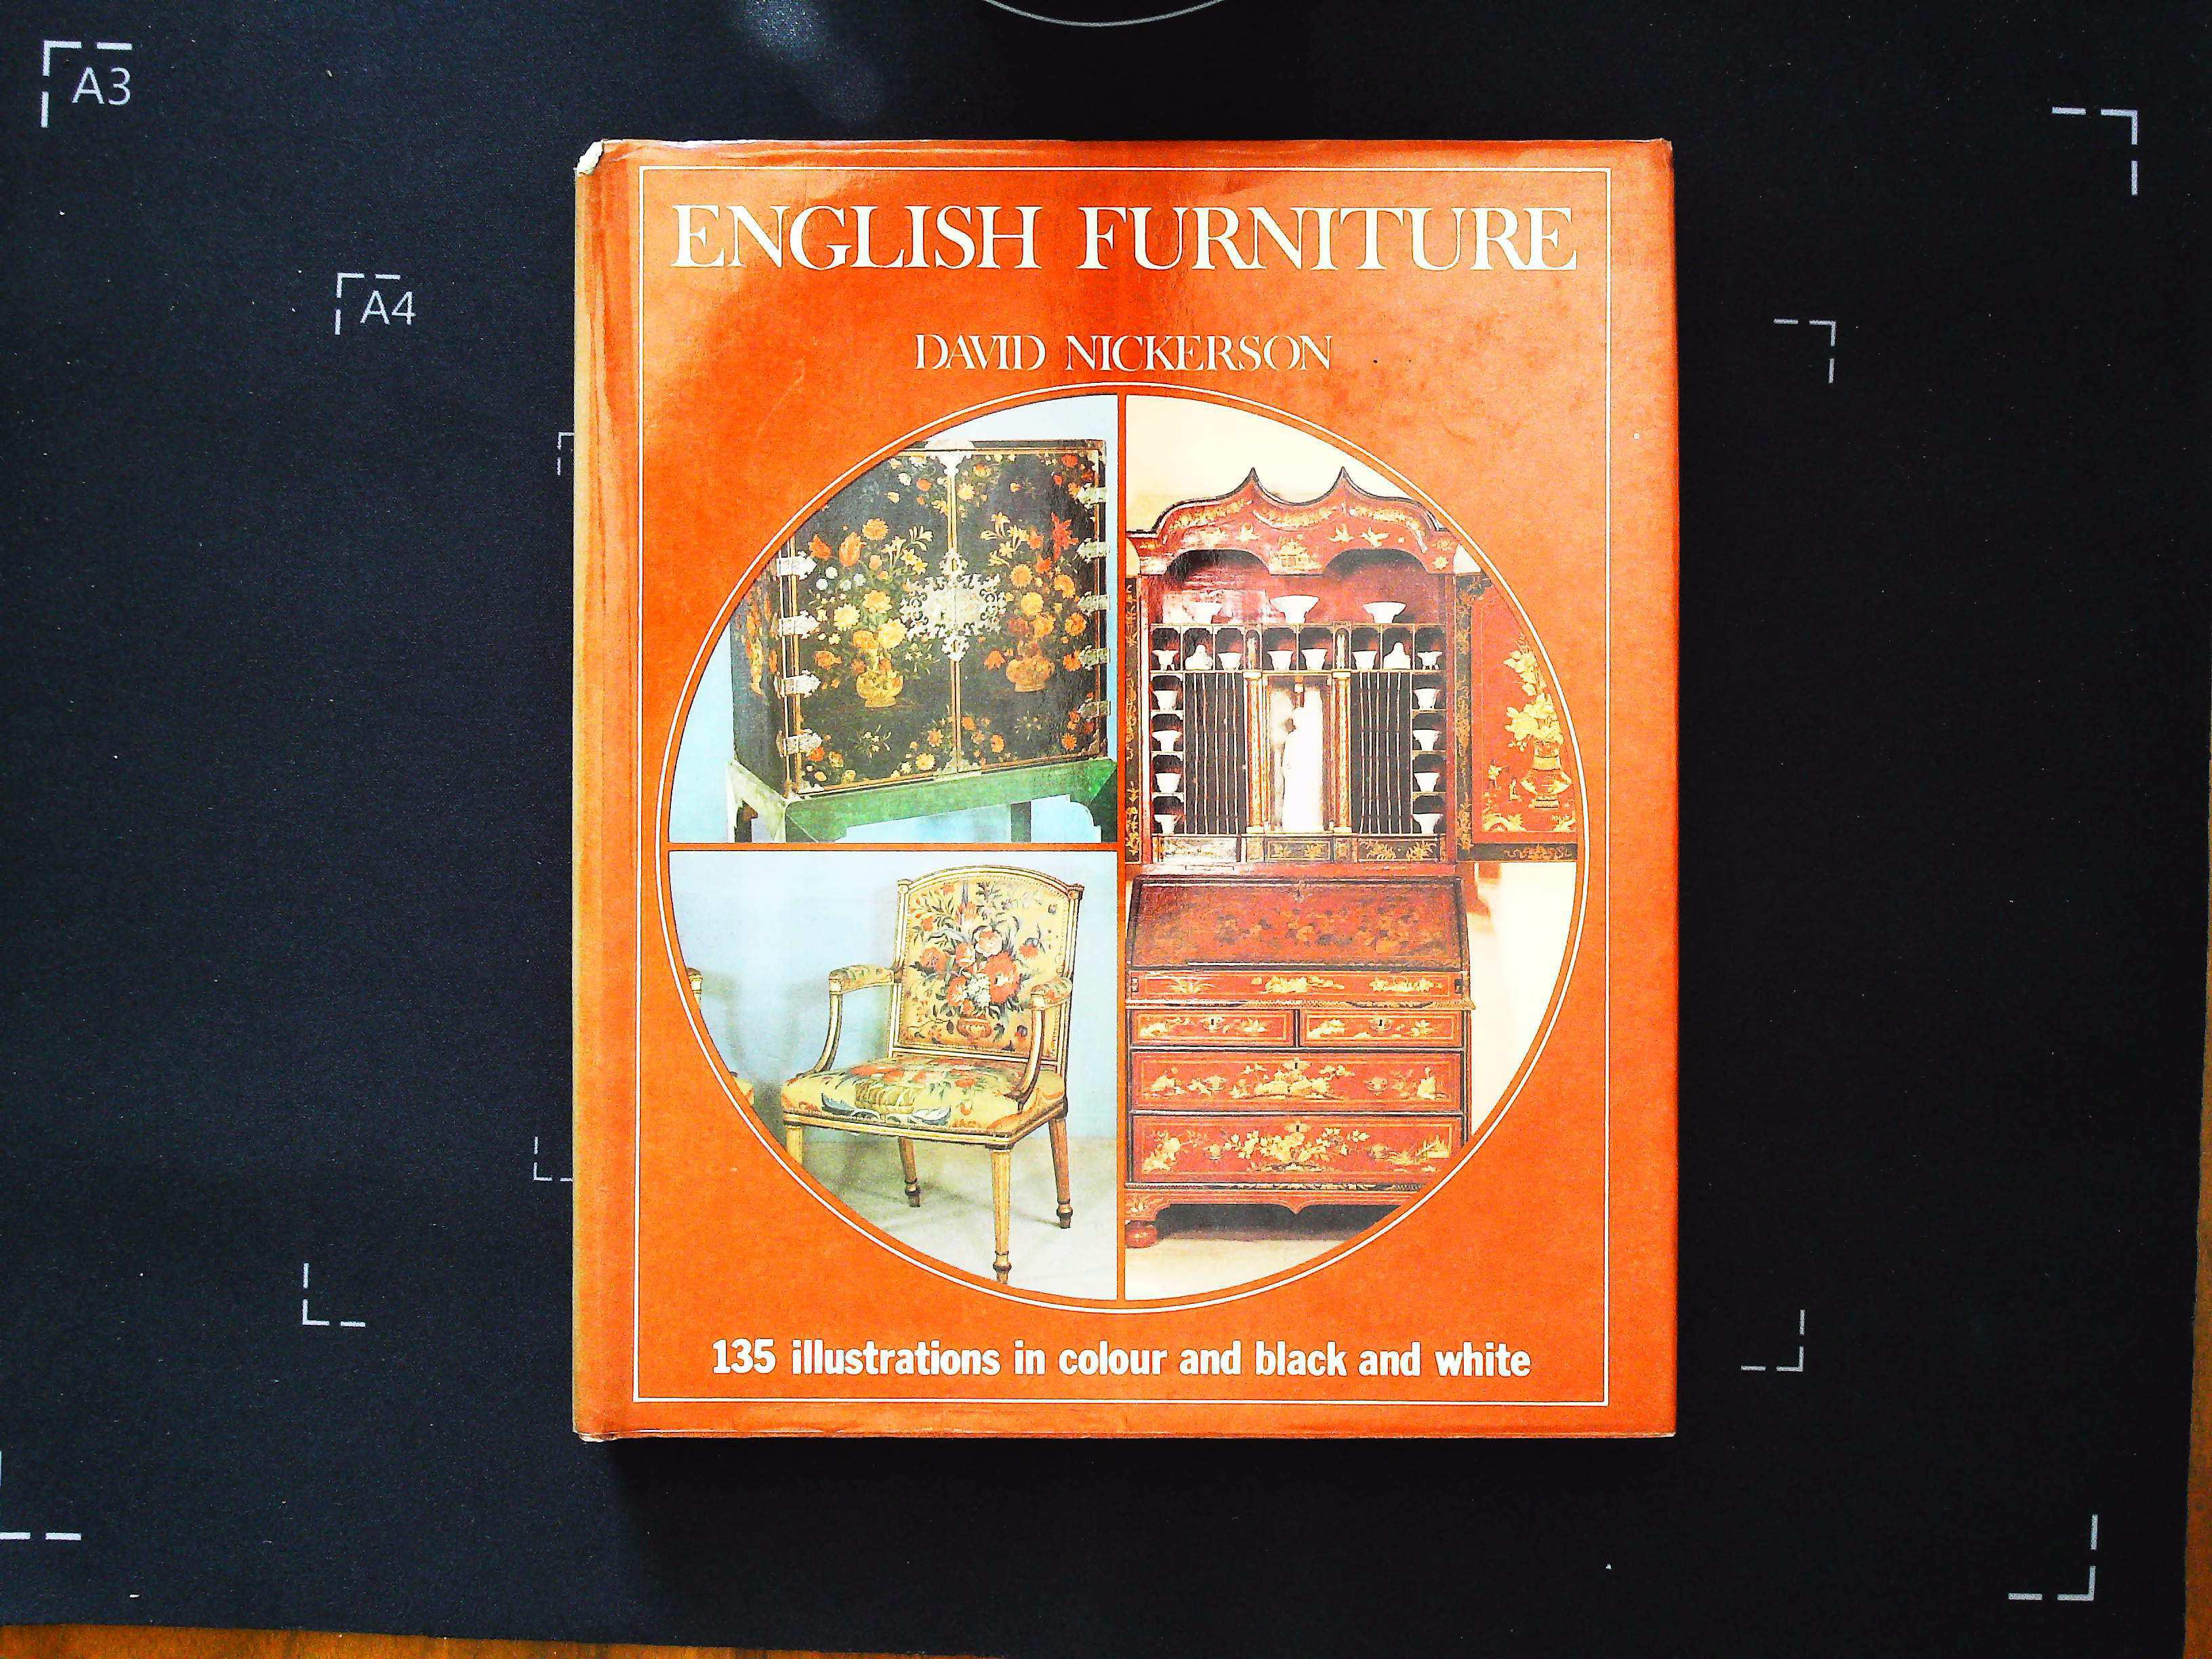 English Furniture by David Nickerson hardback book 96 pages Published 1973 Octopus Books Ltd. In